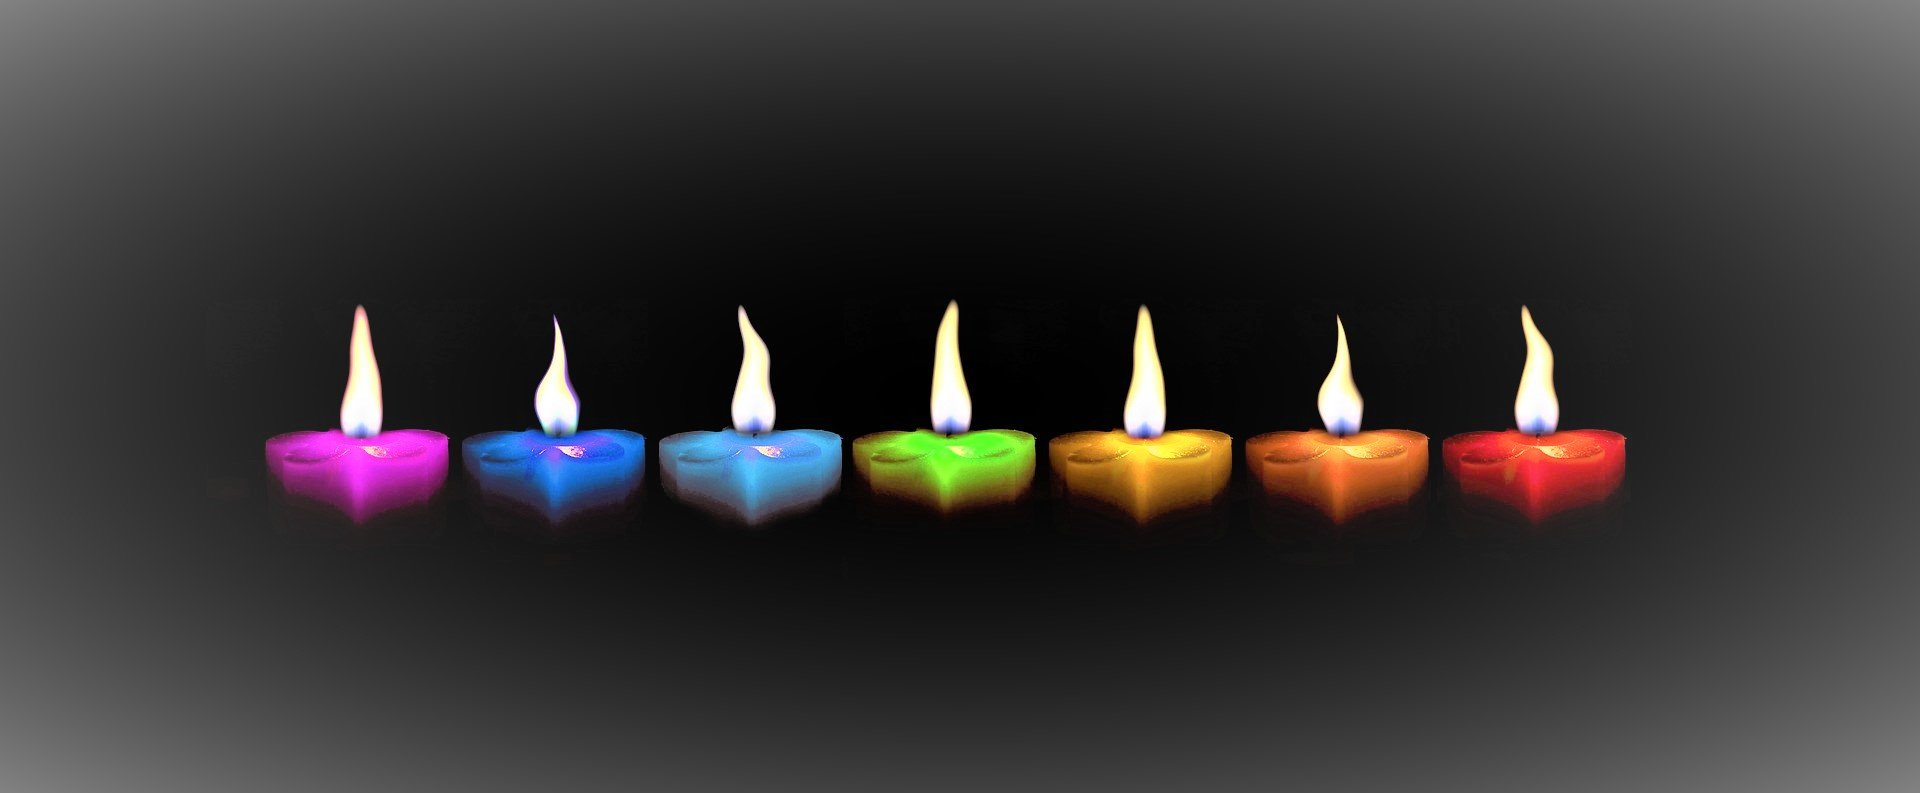 candles-2899921_1920-2